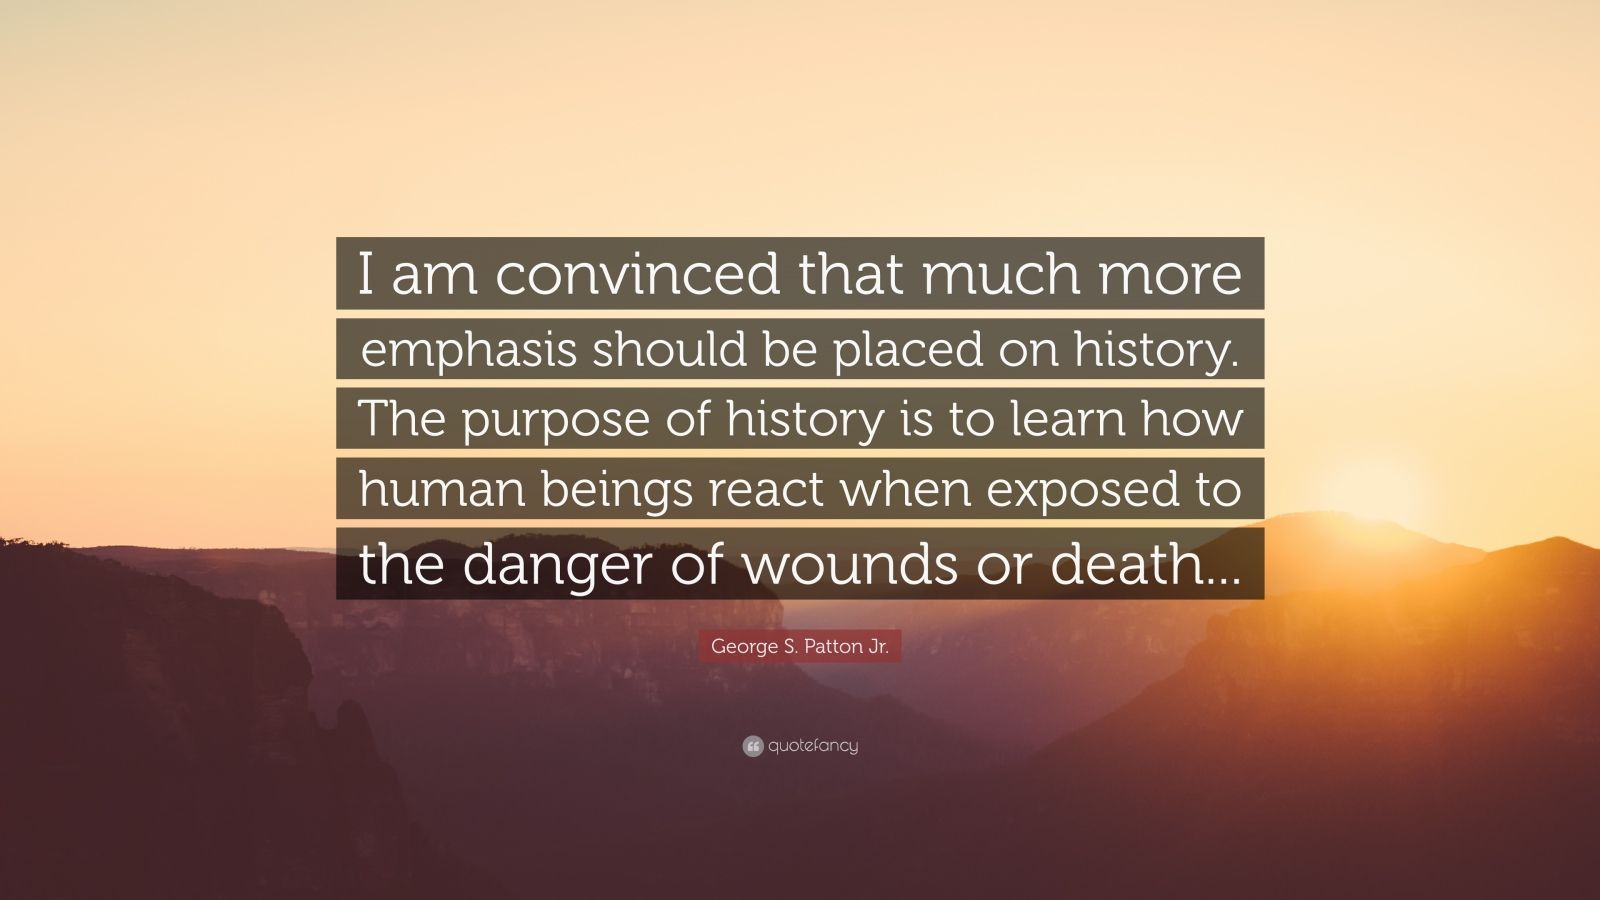 "George S. Patton Jr. Quote: ""I am convinced that much more emphasis should be placed on history. The purpose of history is to learn how human beings react when exposed to the danger of wounds or death..."""